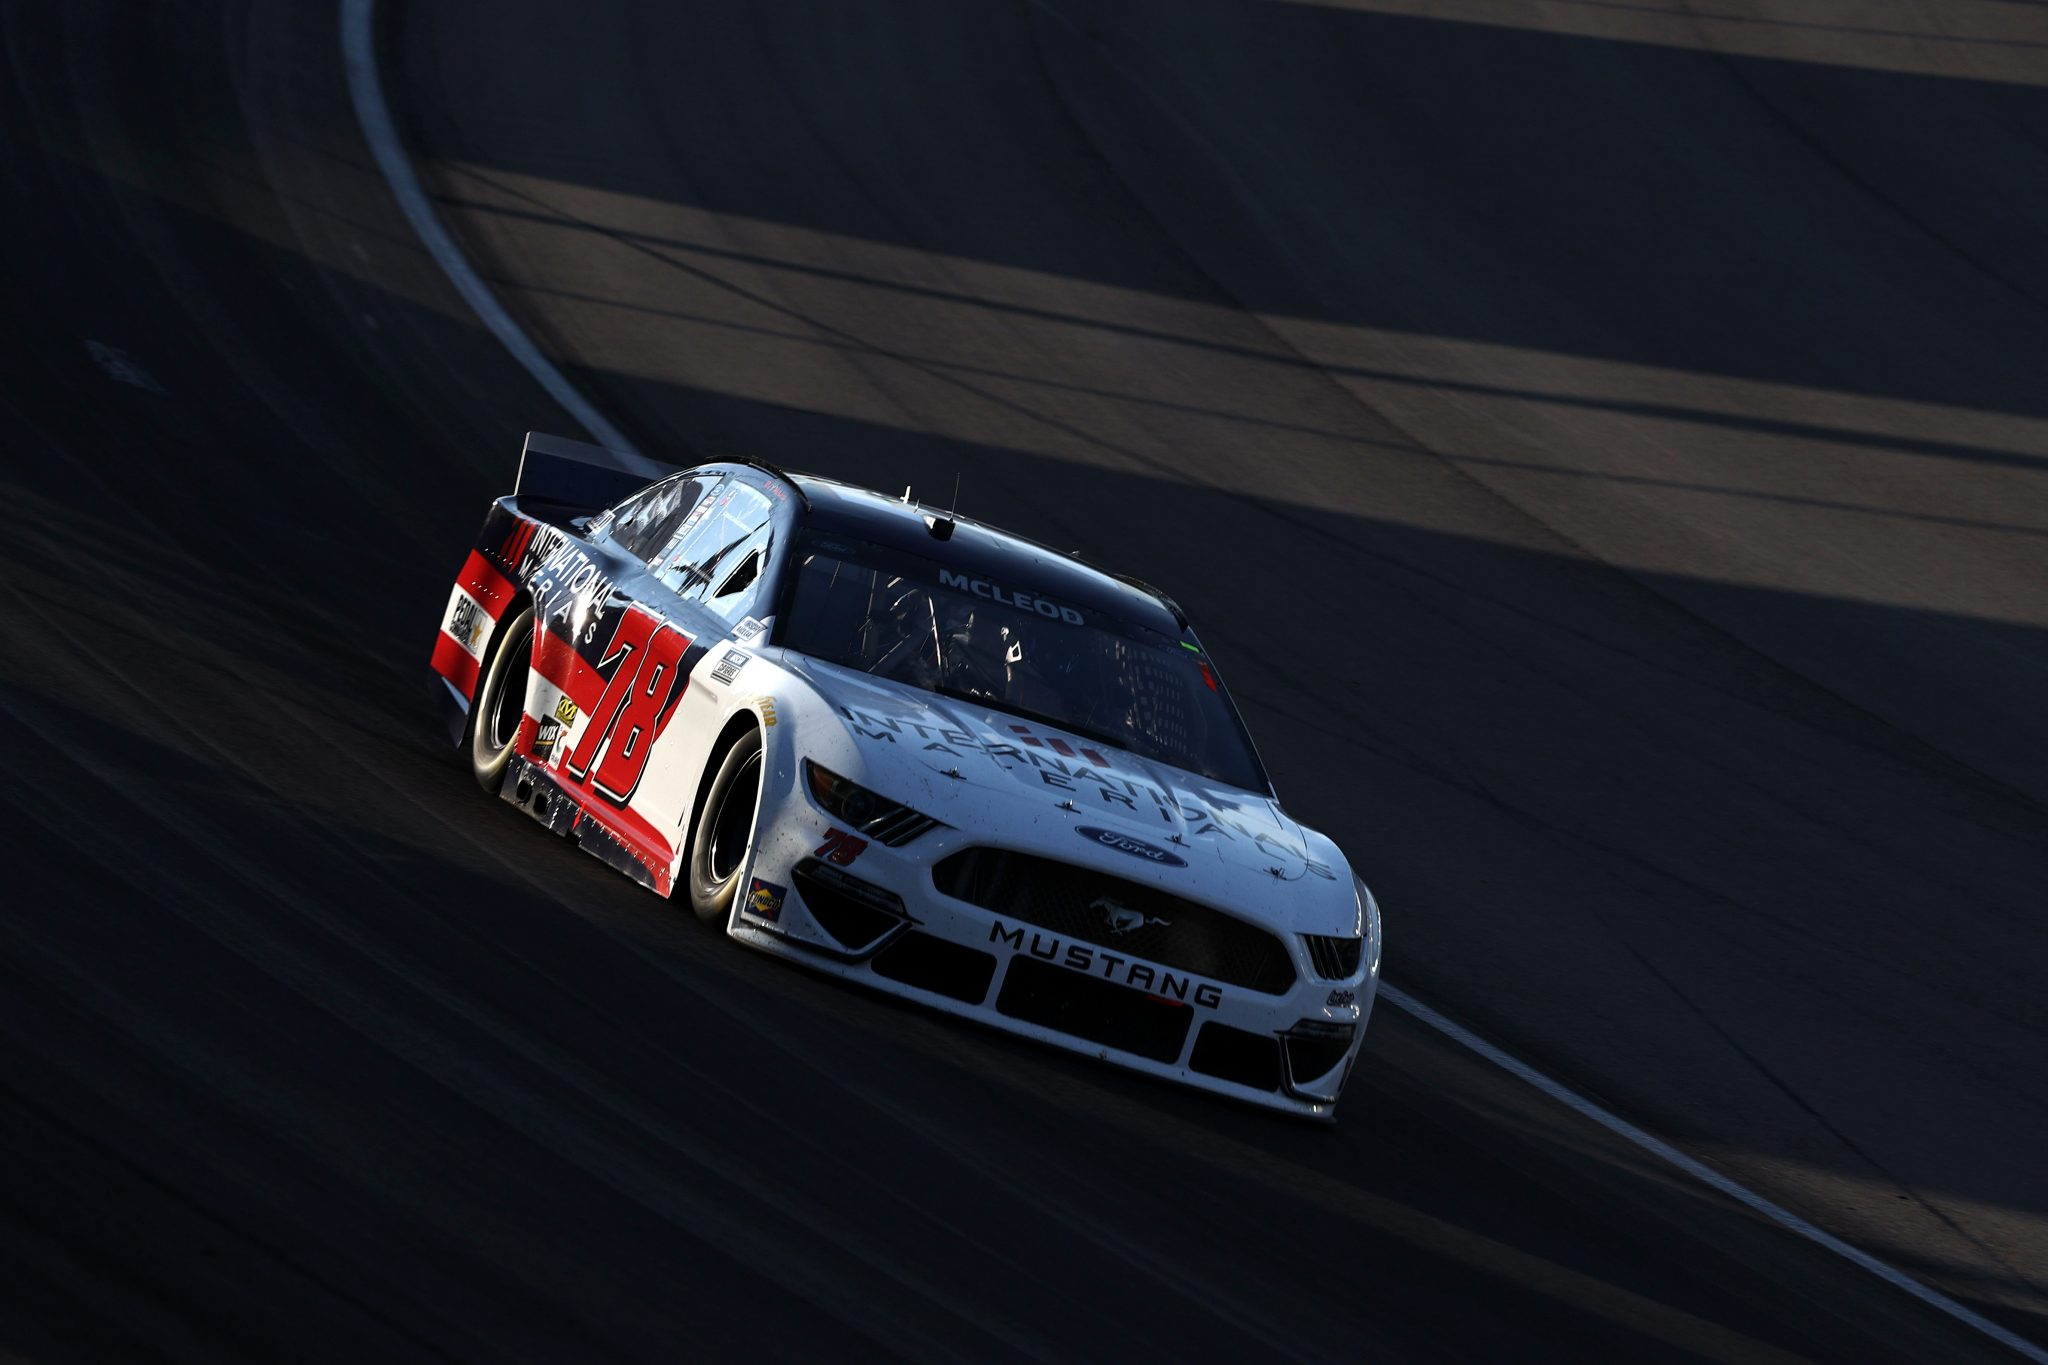 LAS VEGAS, NEVADA - SEPTEMBER 26: BJ McLeod, driver of the #78 International Materials Ford, drives during the NASCAR Cup Series South Point 400 at Las Vegas Motor Speedway on September 26, 2021 in Las Vegas, Nevada. (Photo by Meg Oliphant/Getty Images)   Getty Images